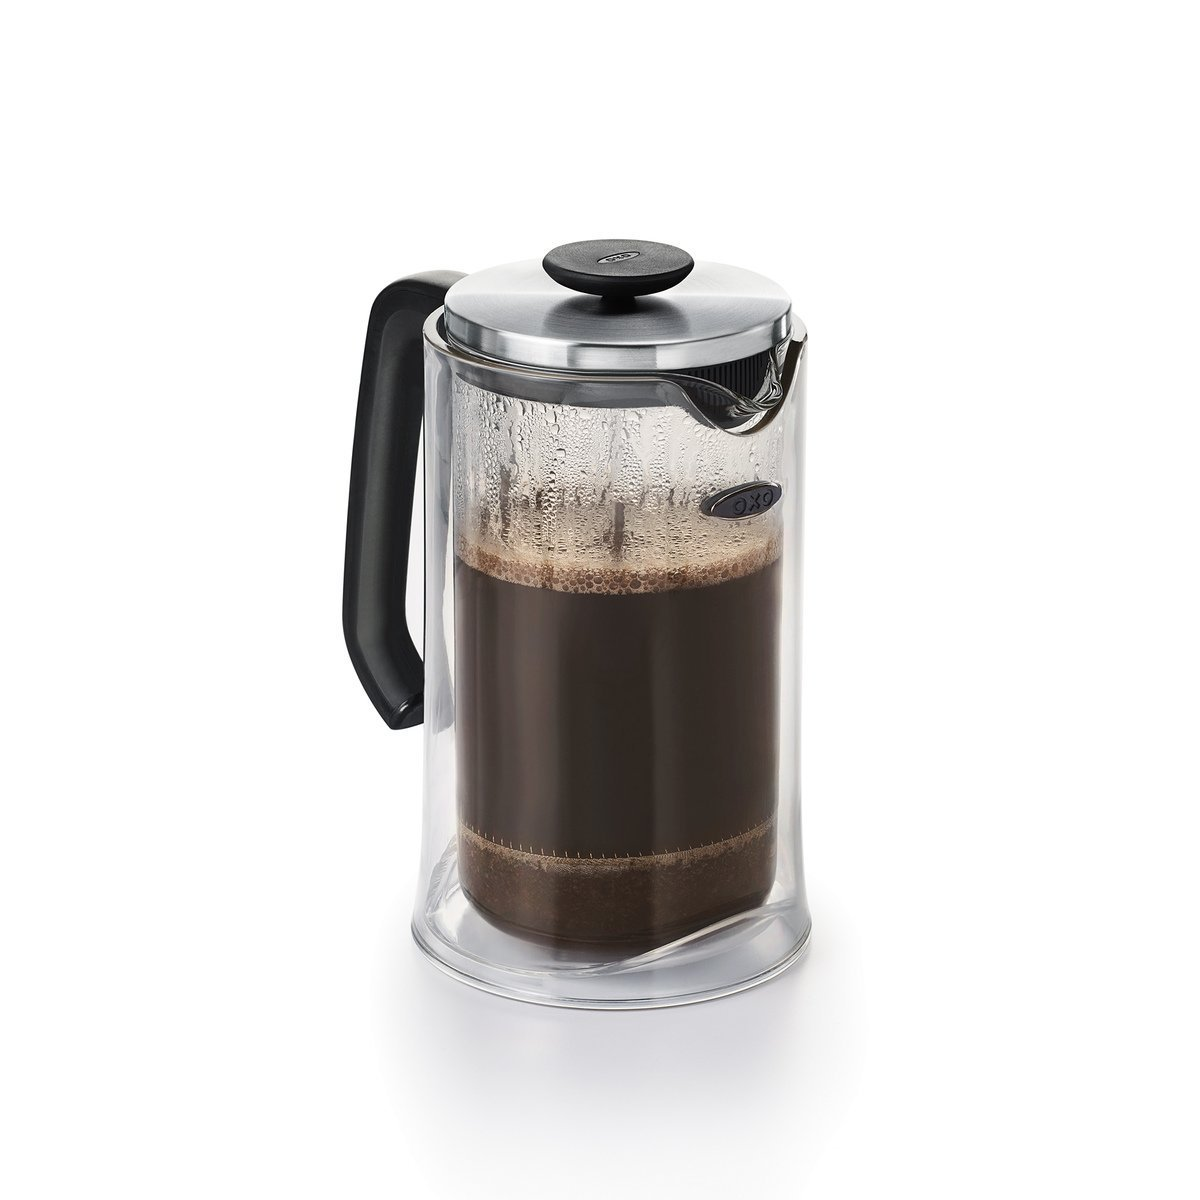 OXO Good Grips Double-Wall Impact French Press with Protective Tritan Case and Glass Carafe, 32 Ounce (8 Cups)